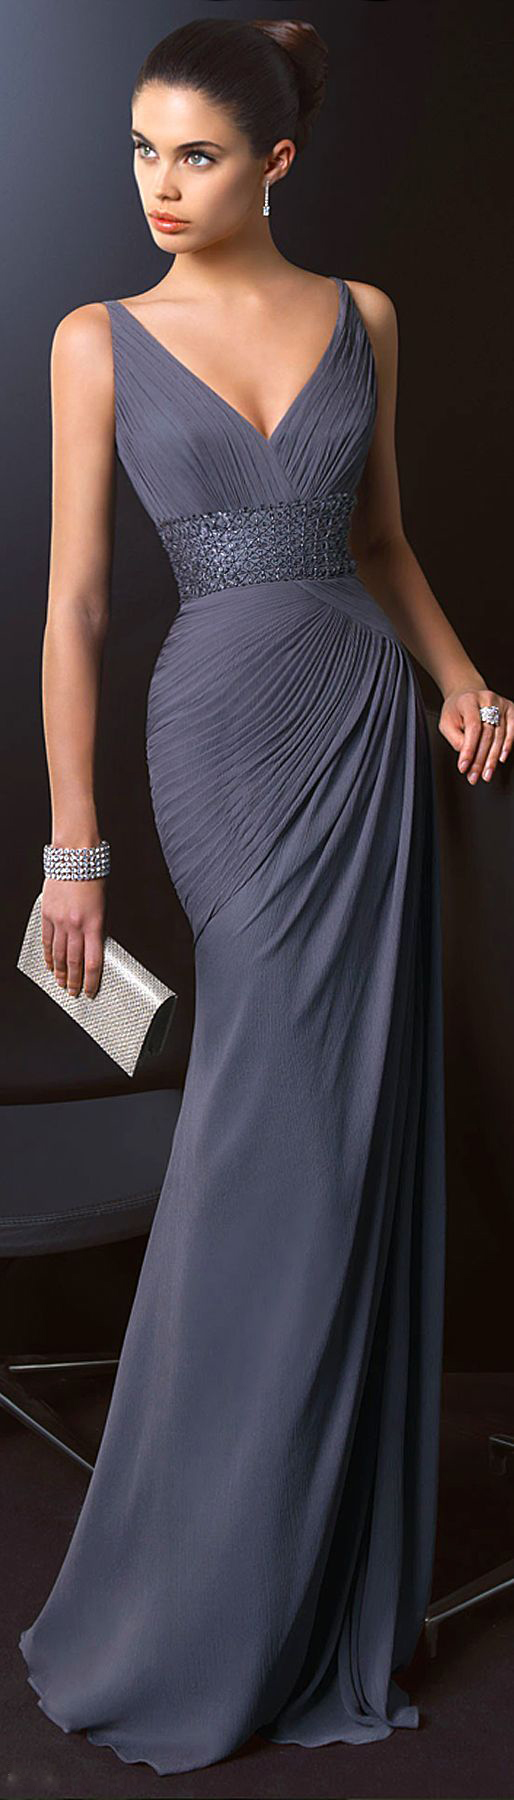 Classy and elegant dress outfits 13